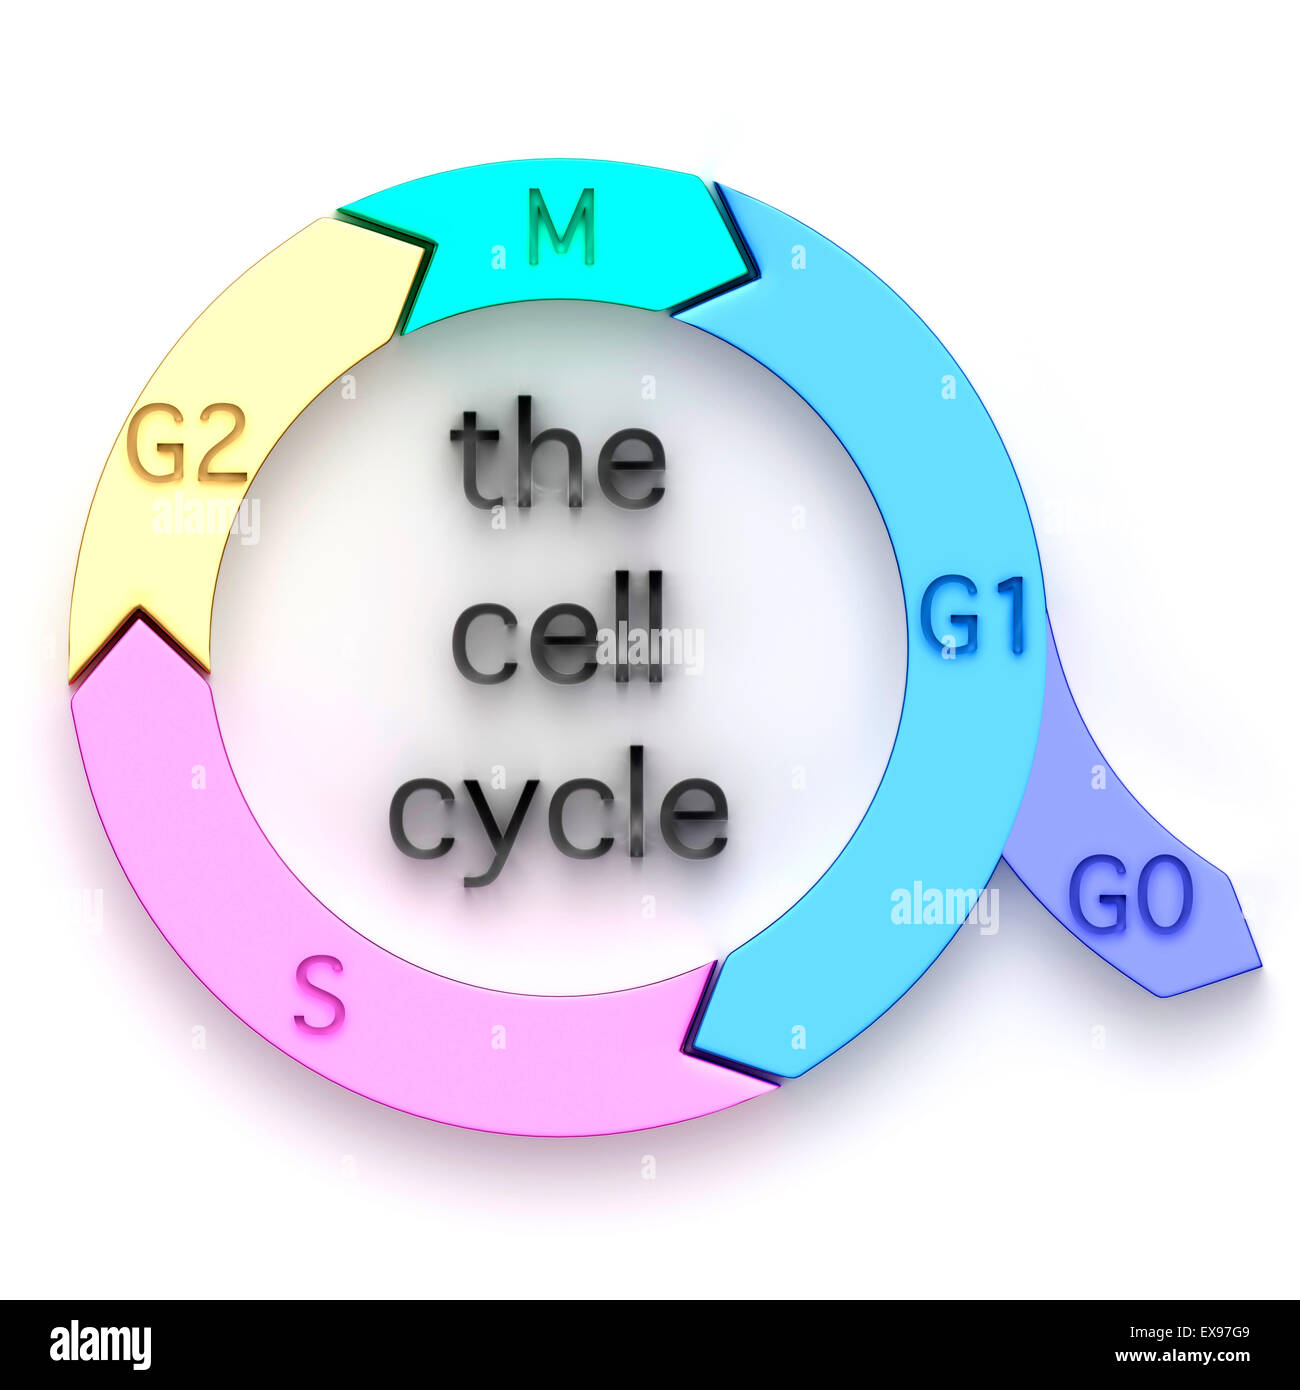 Illustration of the cell cycle. - Stock Image